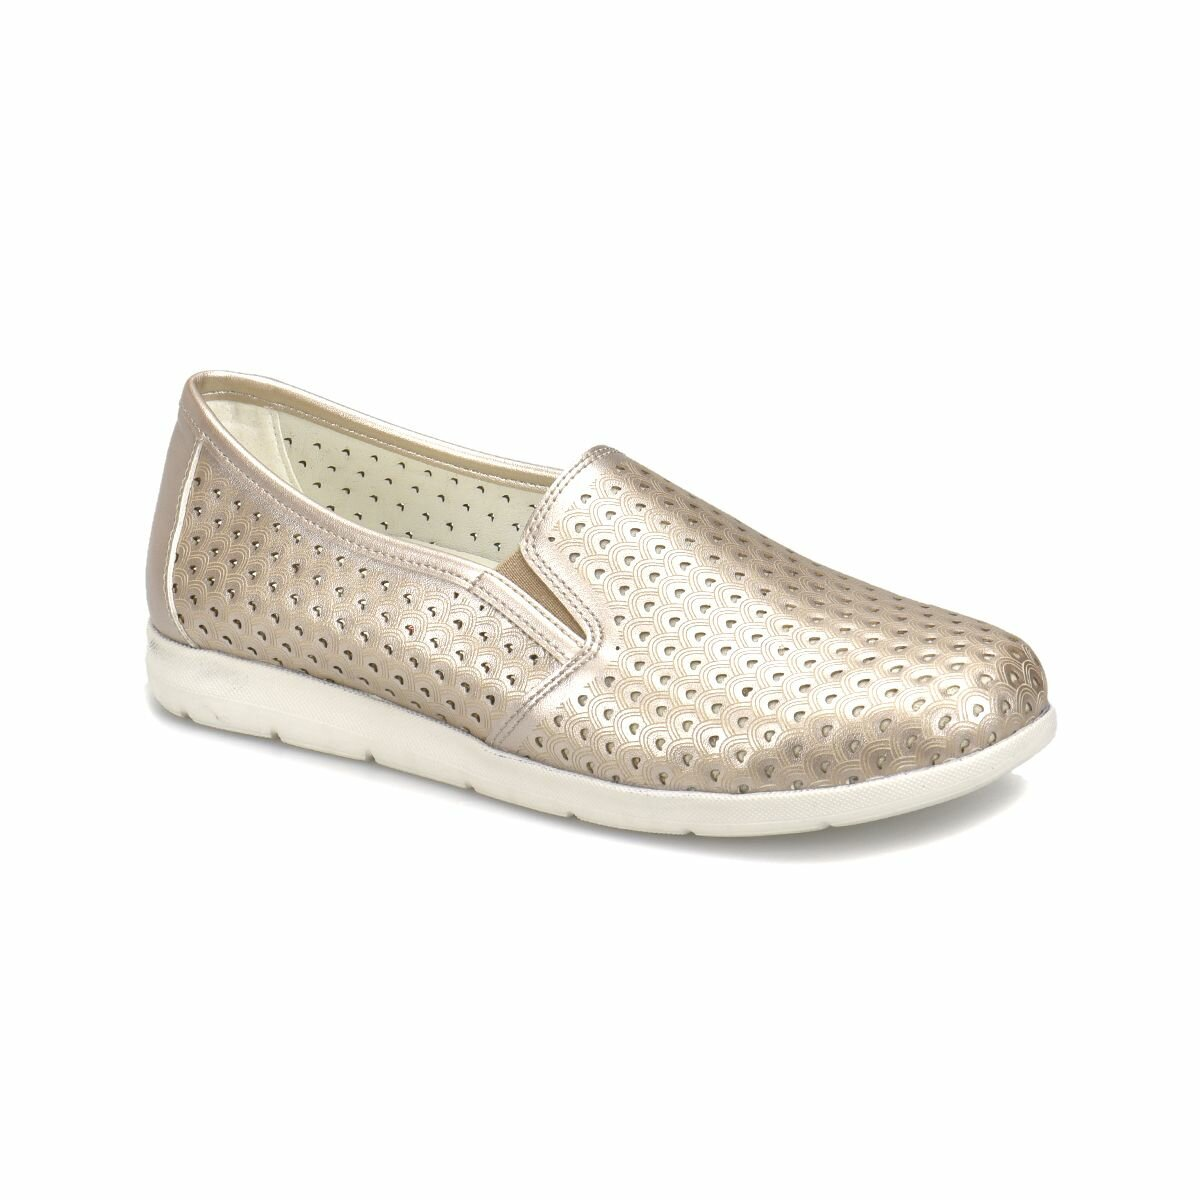 FLO 81.111320.Z Gold Women Basic Comfort Polaris